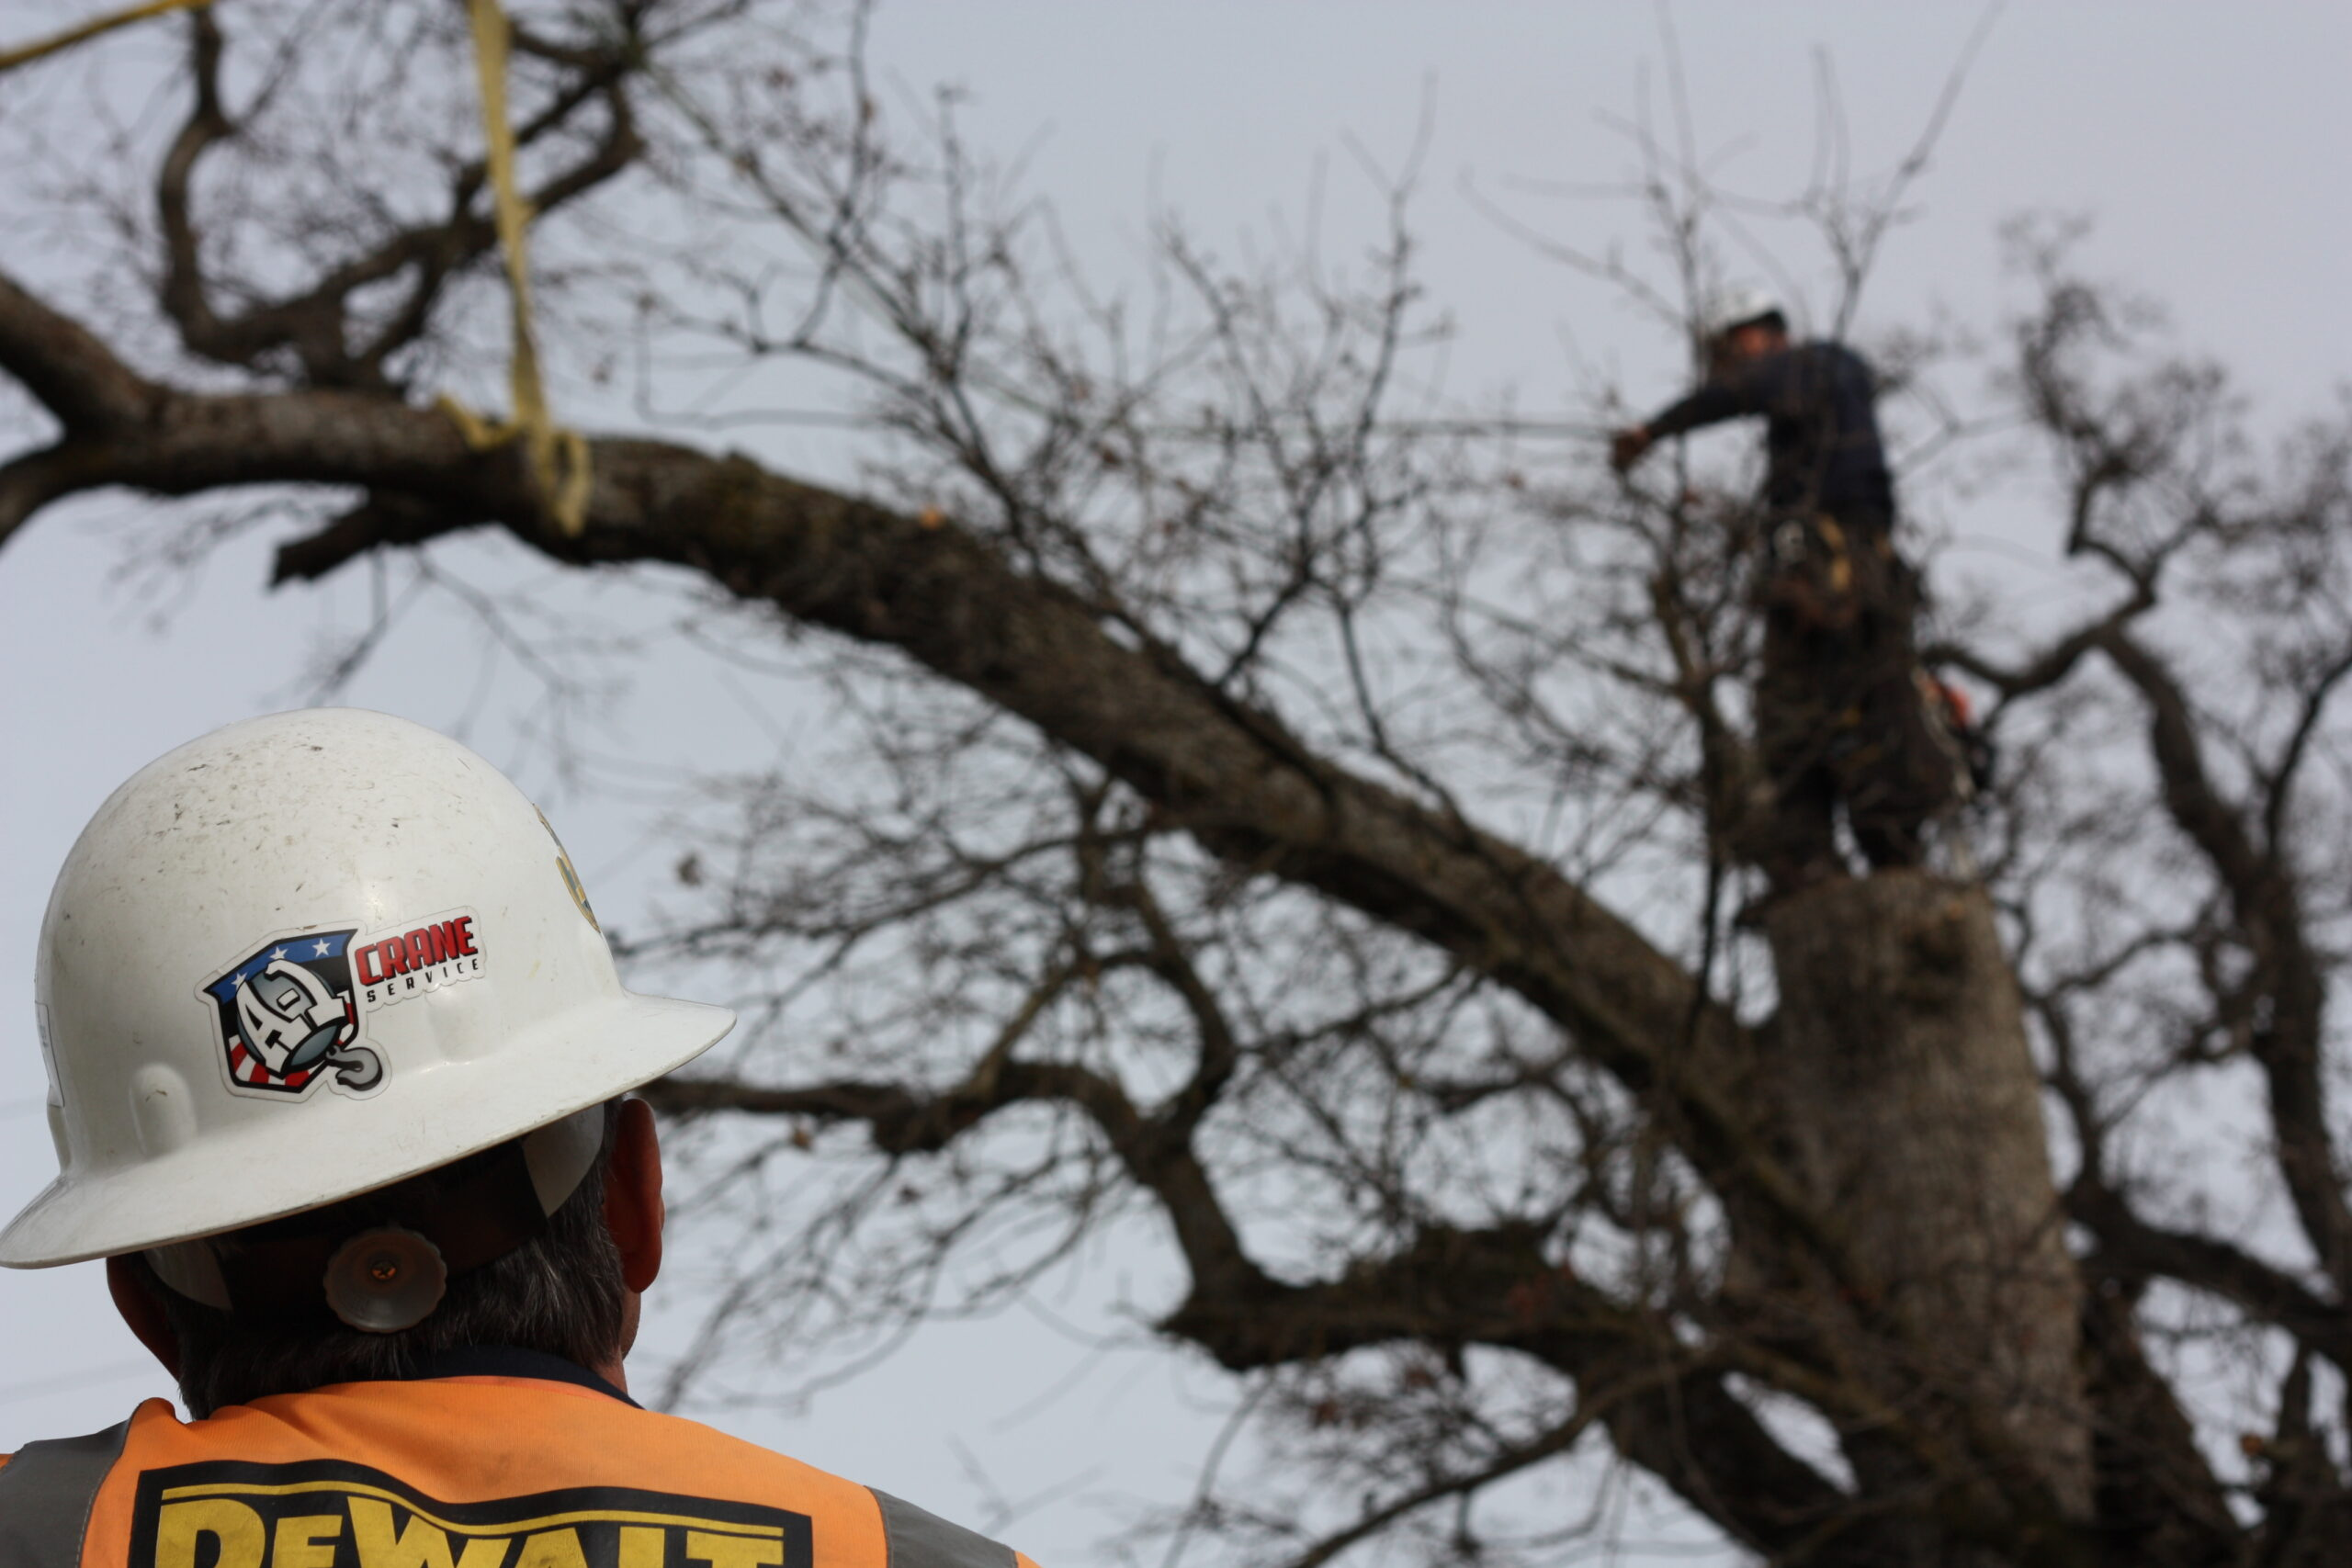 Removing Trees Safely With a Crane